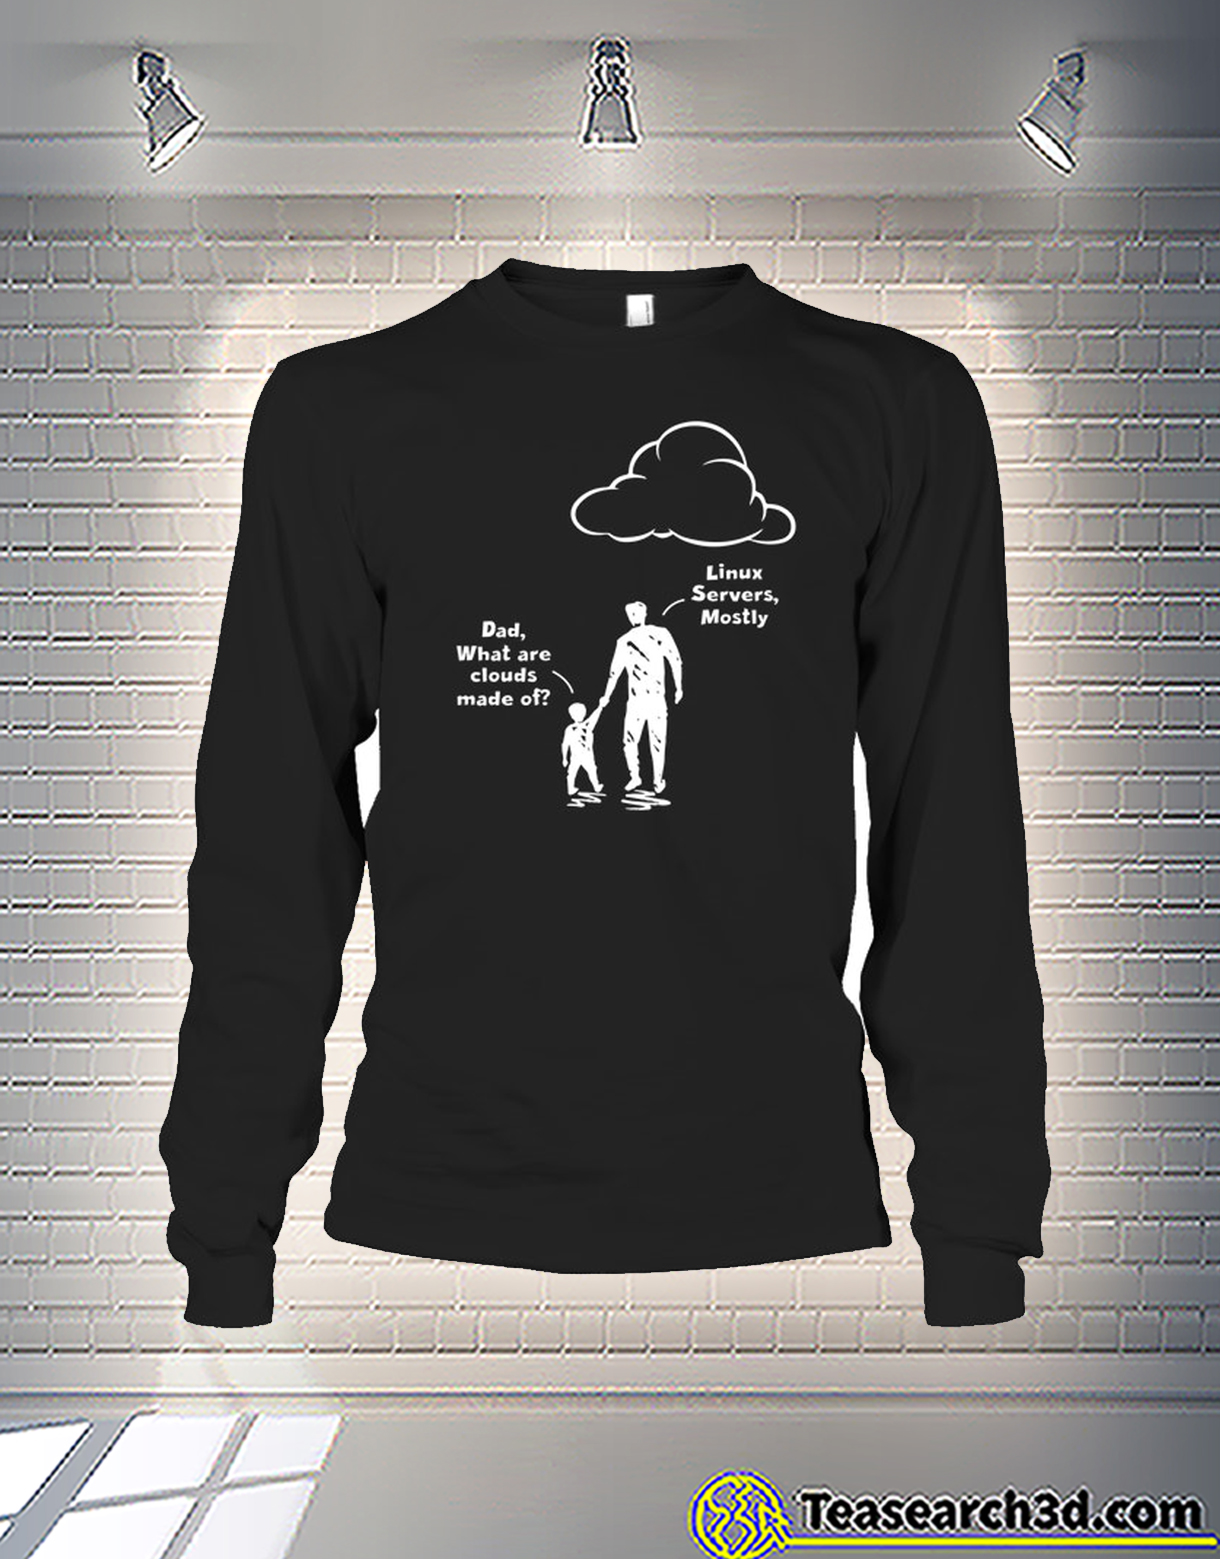 Dad what are clouds made of linux severs mostly hoodie